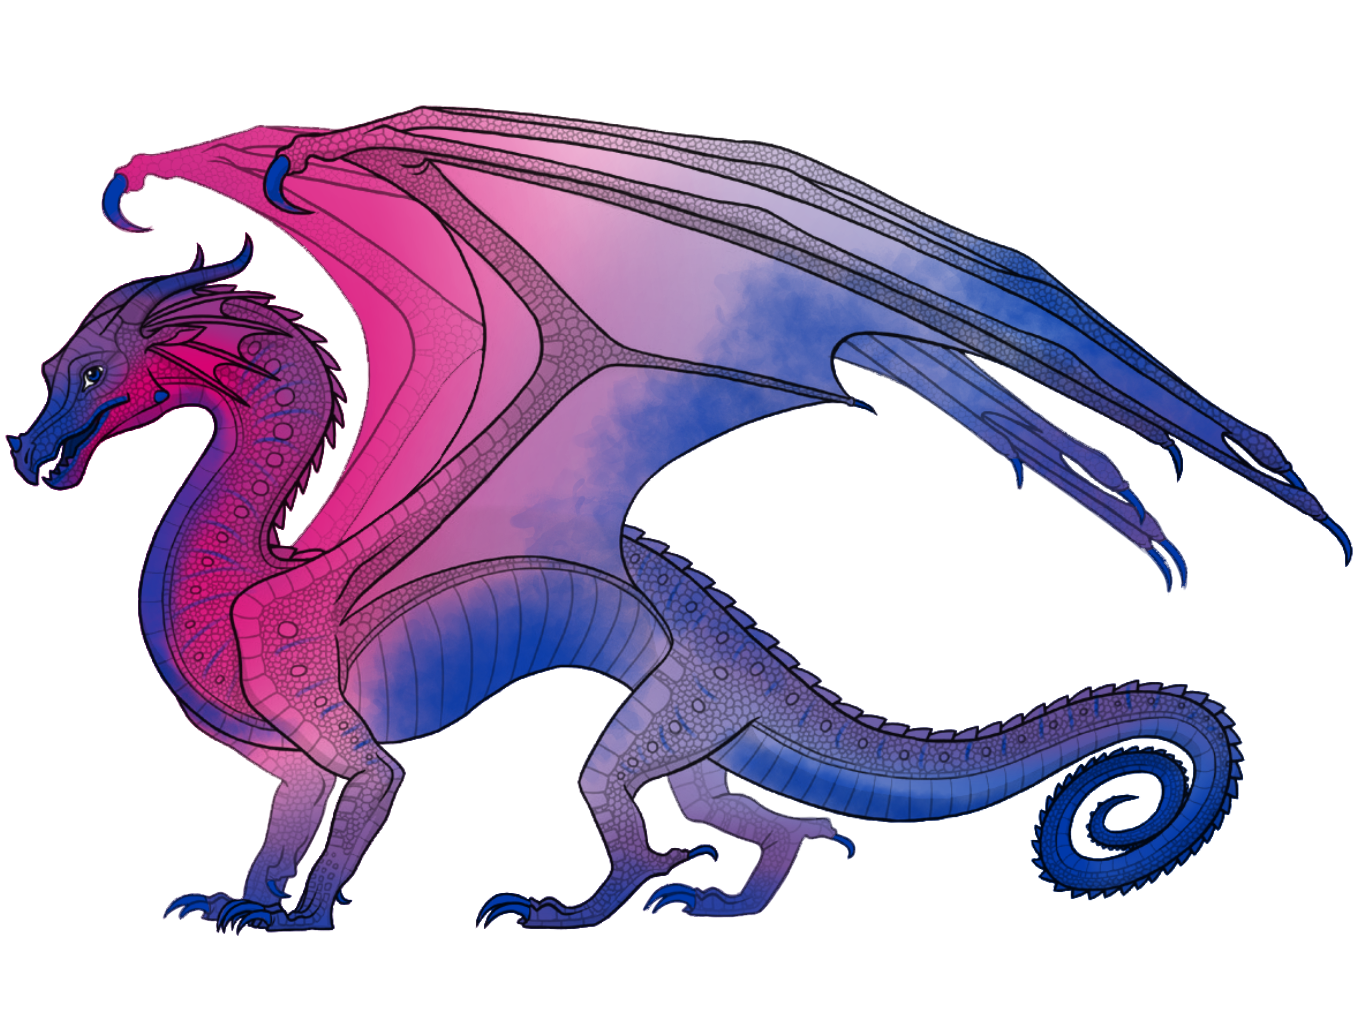 Wings Of Fire Color Edits Complete In 2020 Wings Of Fire Wings Of Fire Dragons Fire Art